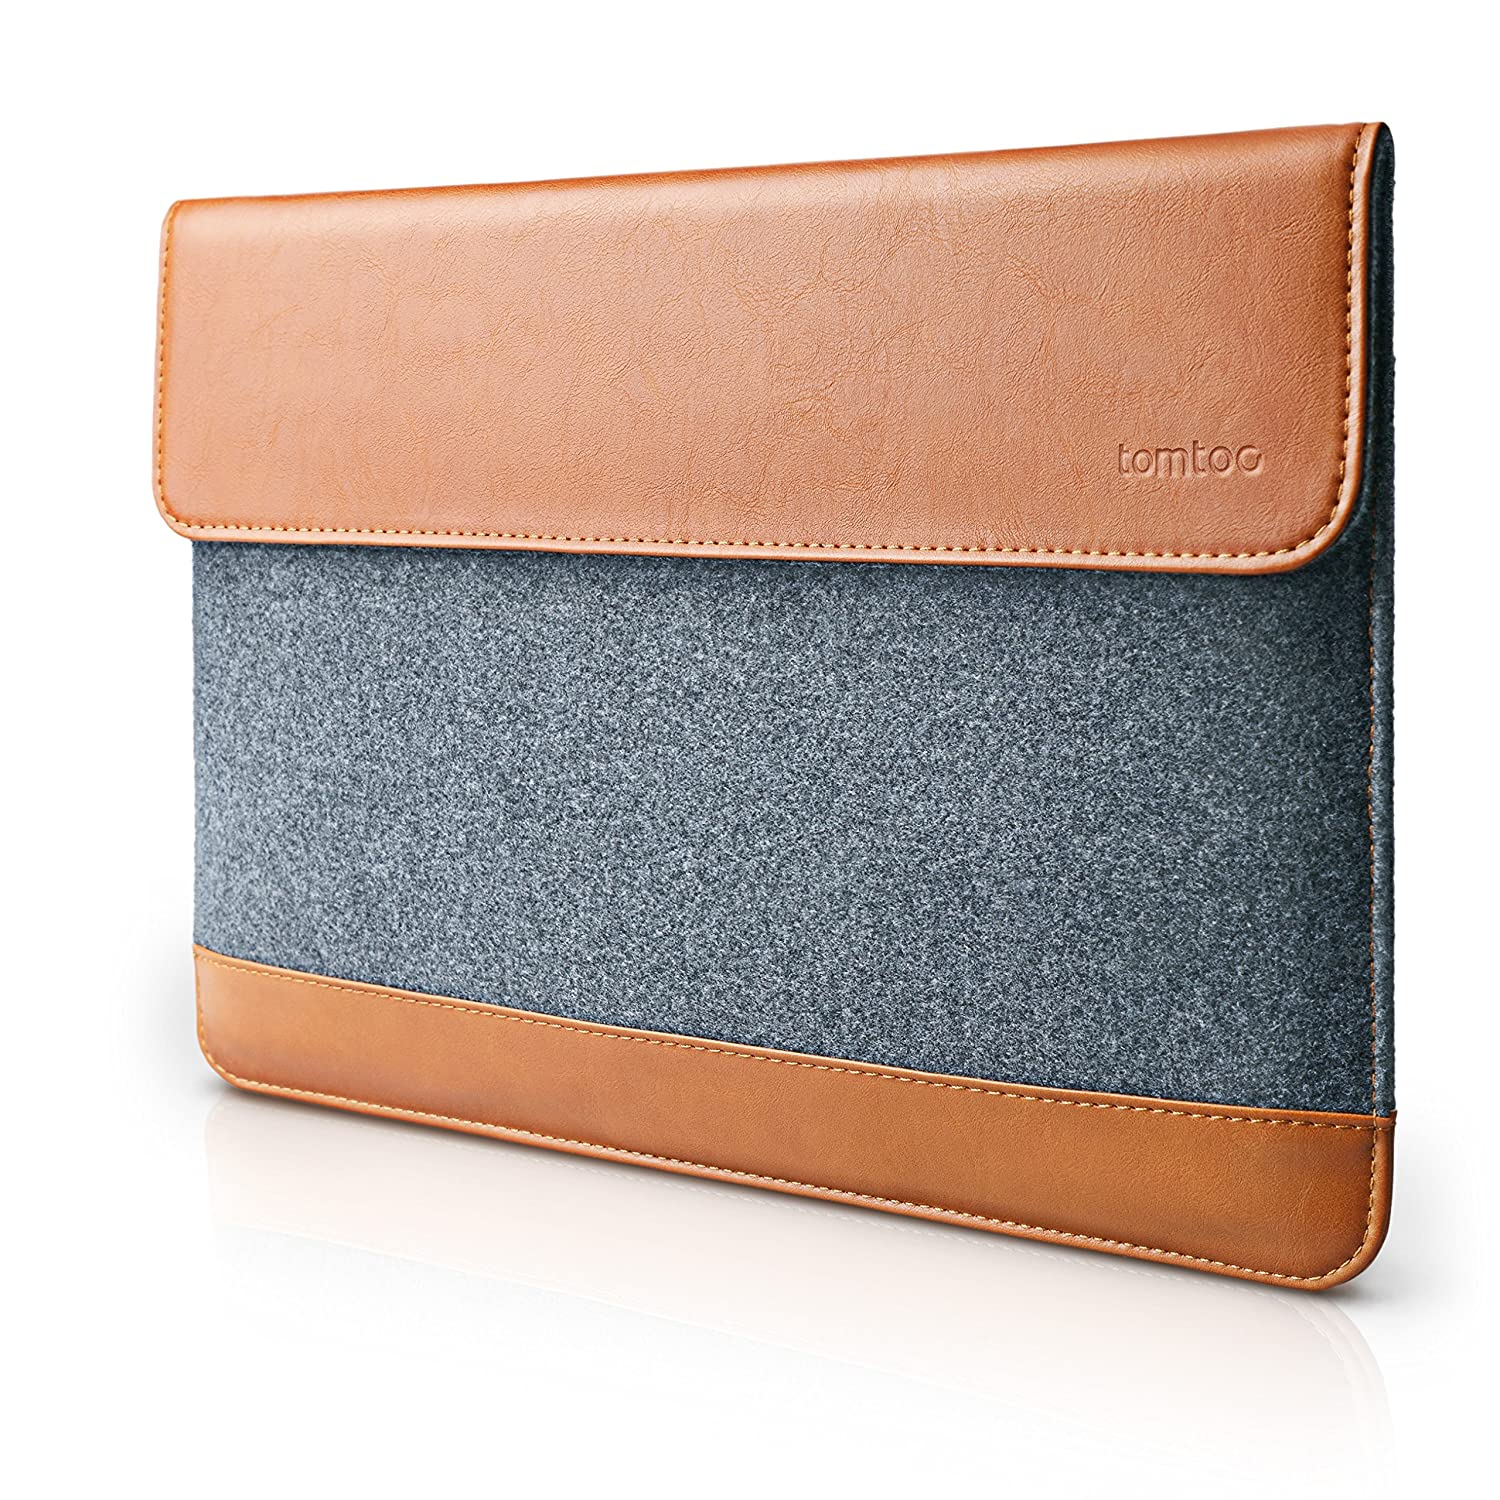 tomtoc Slim 13-13.3 Inch Laptop Sleeve Felt & PU Leather Bag with Accessory Pocket, Compatible with MacBook Air 13.3 | MacBook Pro Retina 13 2012-2015 | 12.9 iPad Pro, Support up to 12.8 x 8.94 in A15-C01Y